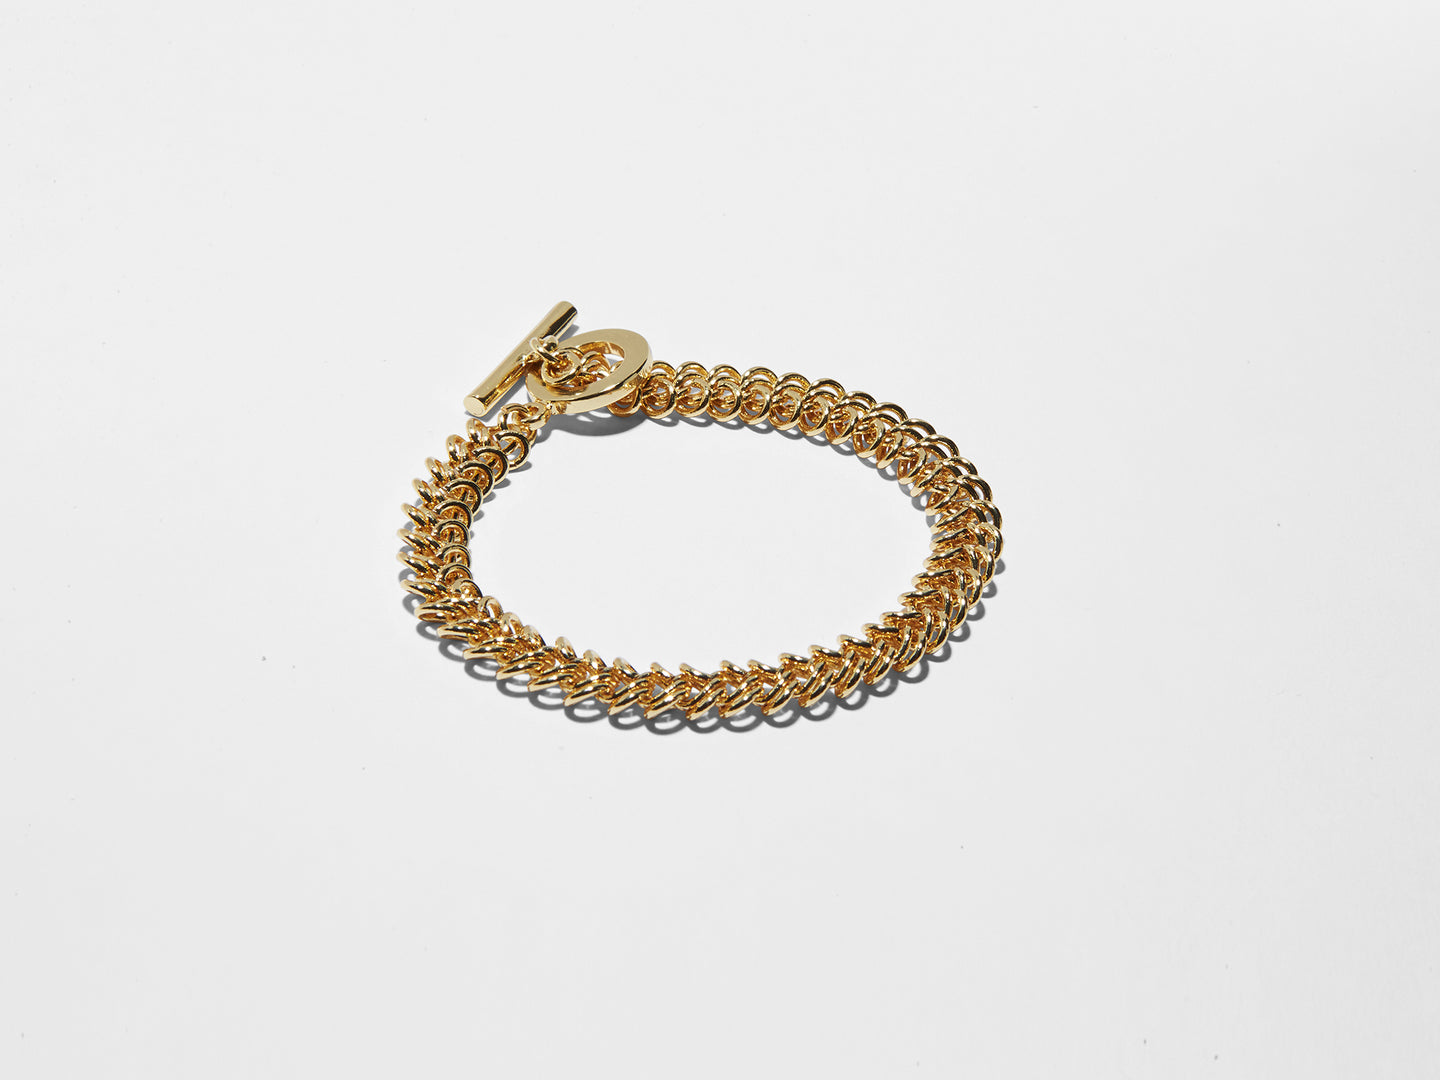 BRAIDED TOGGLE BRACELET